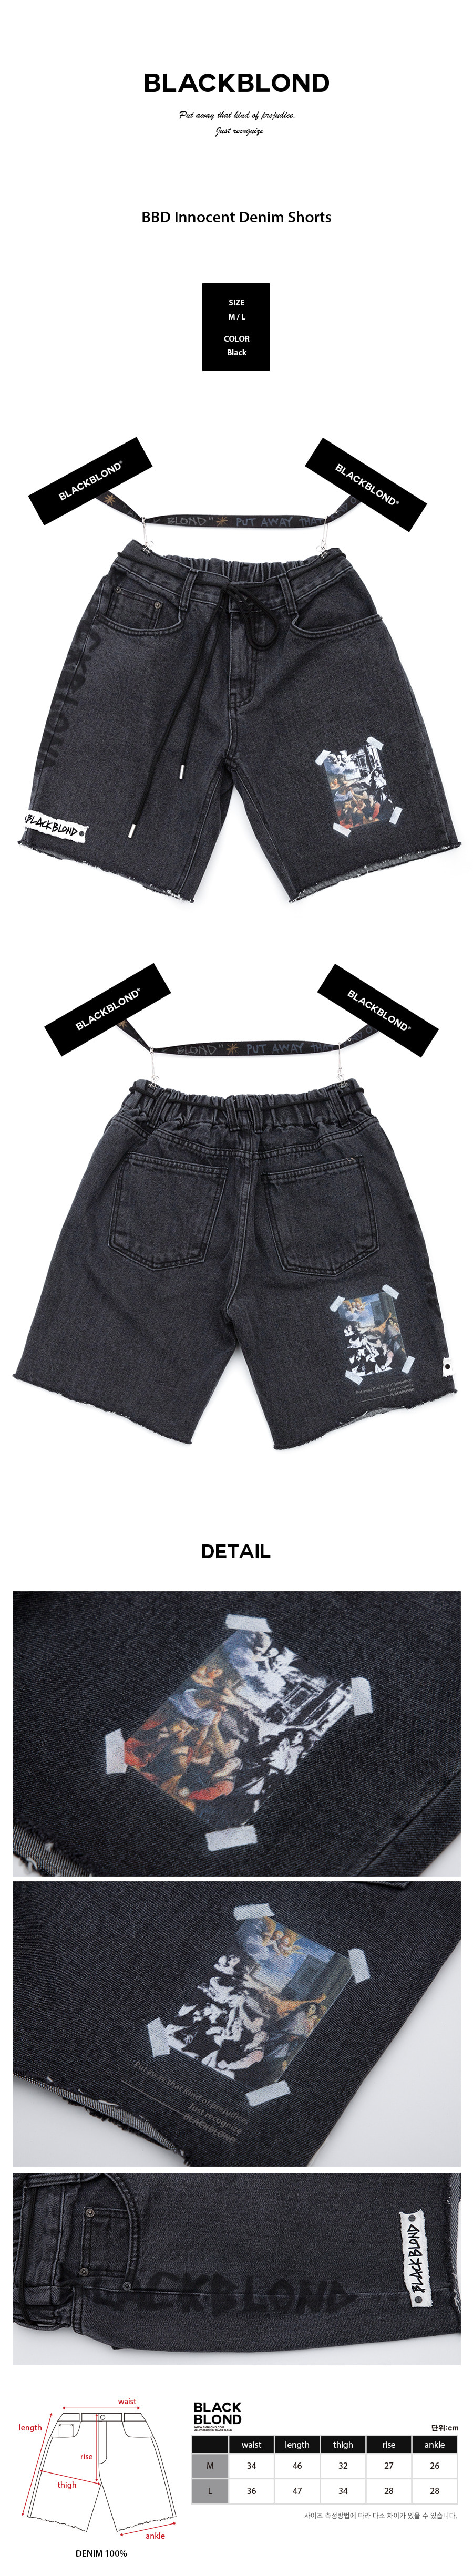 블랙블론드 BLACKBLOND - BBD Innocent Denim Shorts (Black)